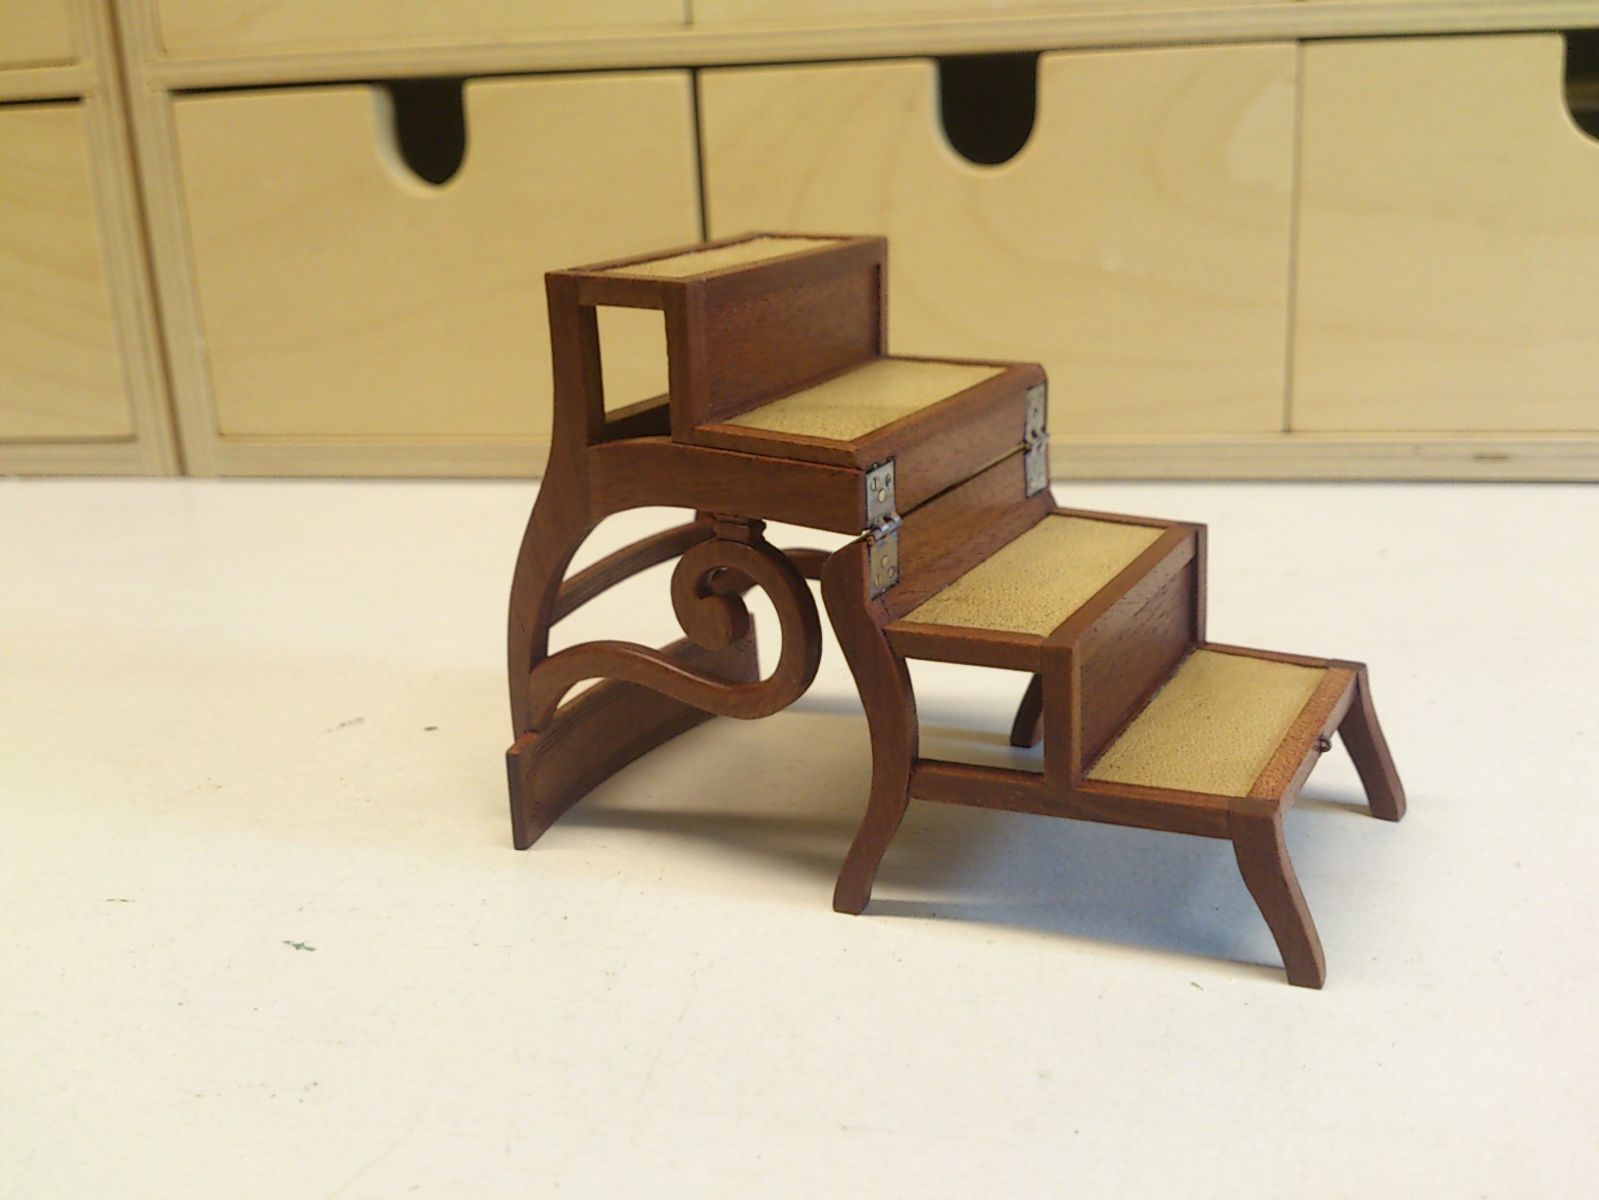 Regency step ladder chair by Debora Beijerbacht